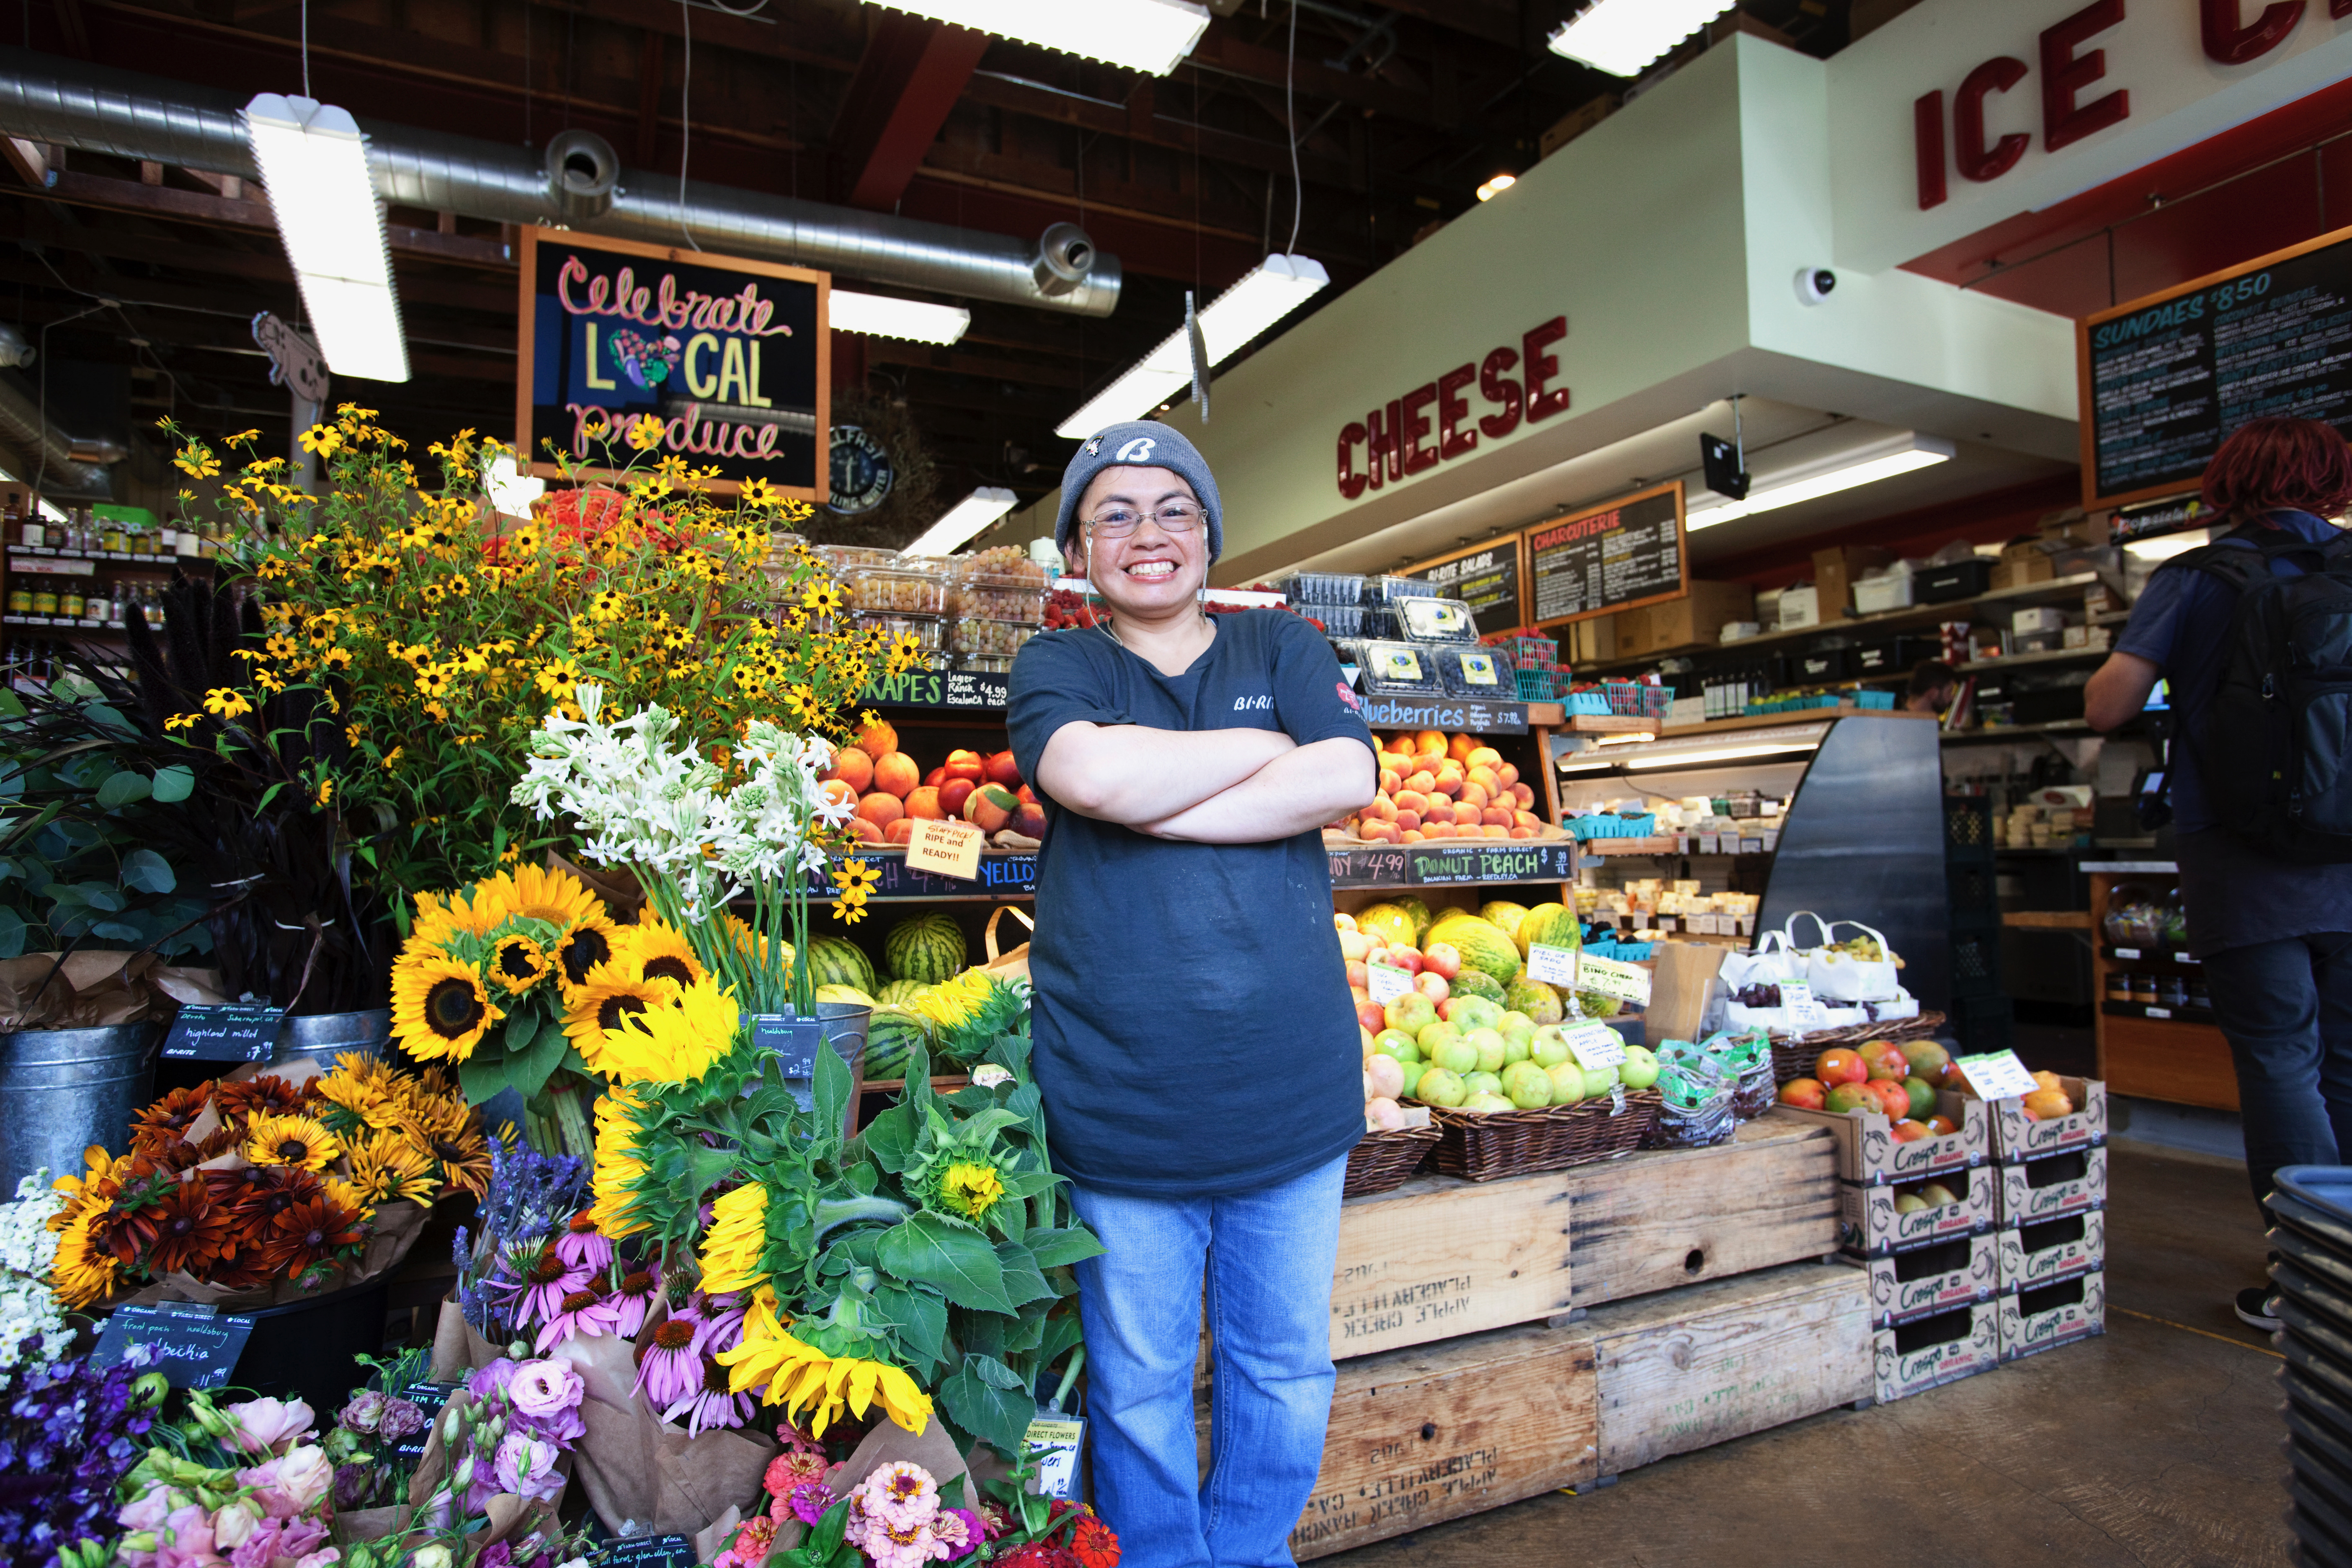 Karla, a Worklink client, posing at work in front of a fruit stand